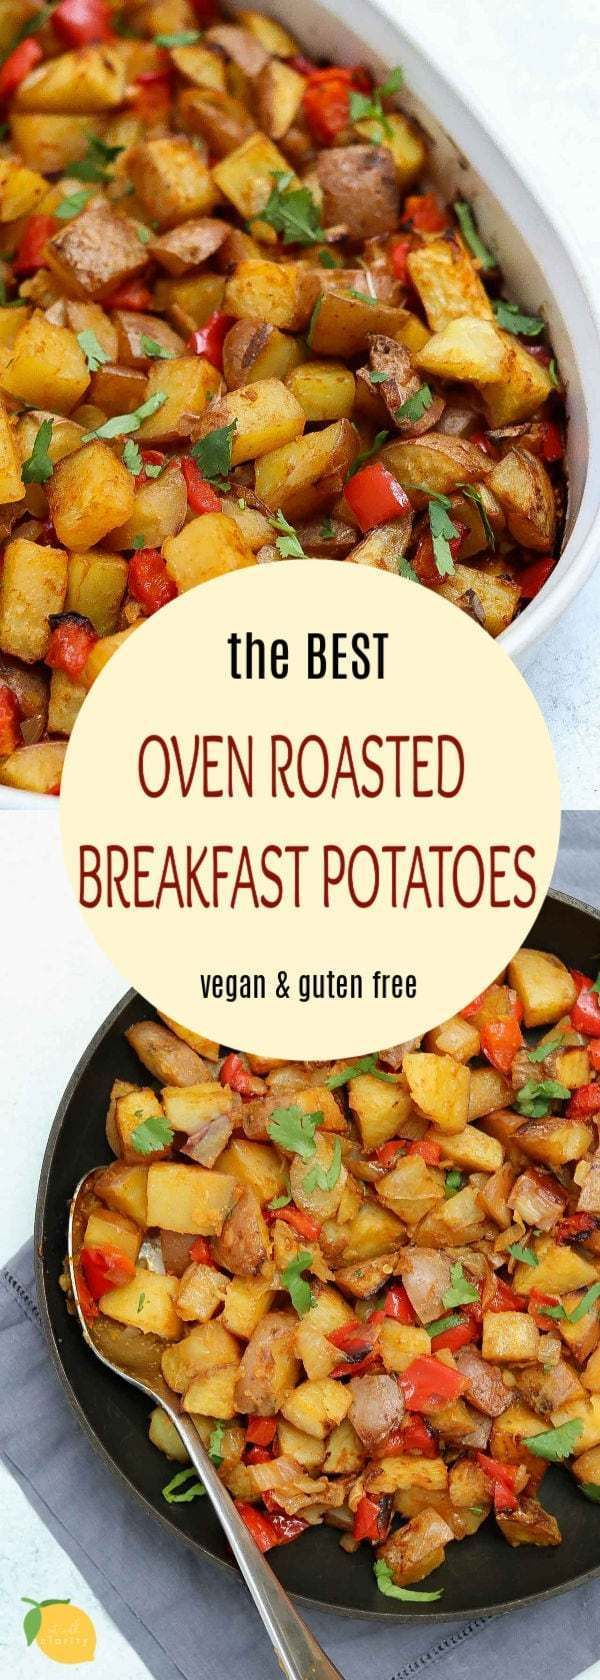 breakfast potatoes #breakfast The Best Oven Roasted Breakfast Potatoes (Vegan) | Eat With Clarity